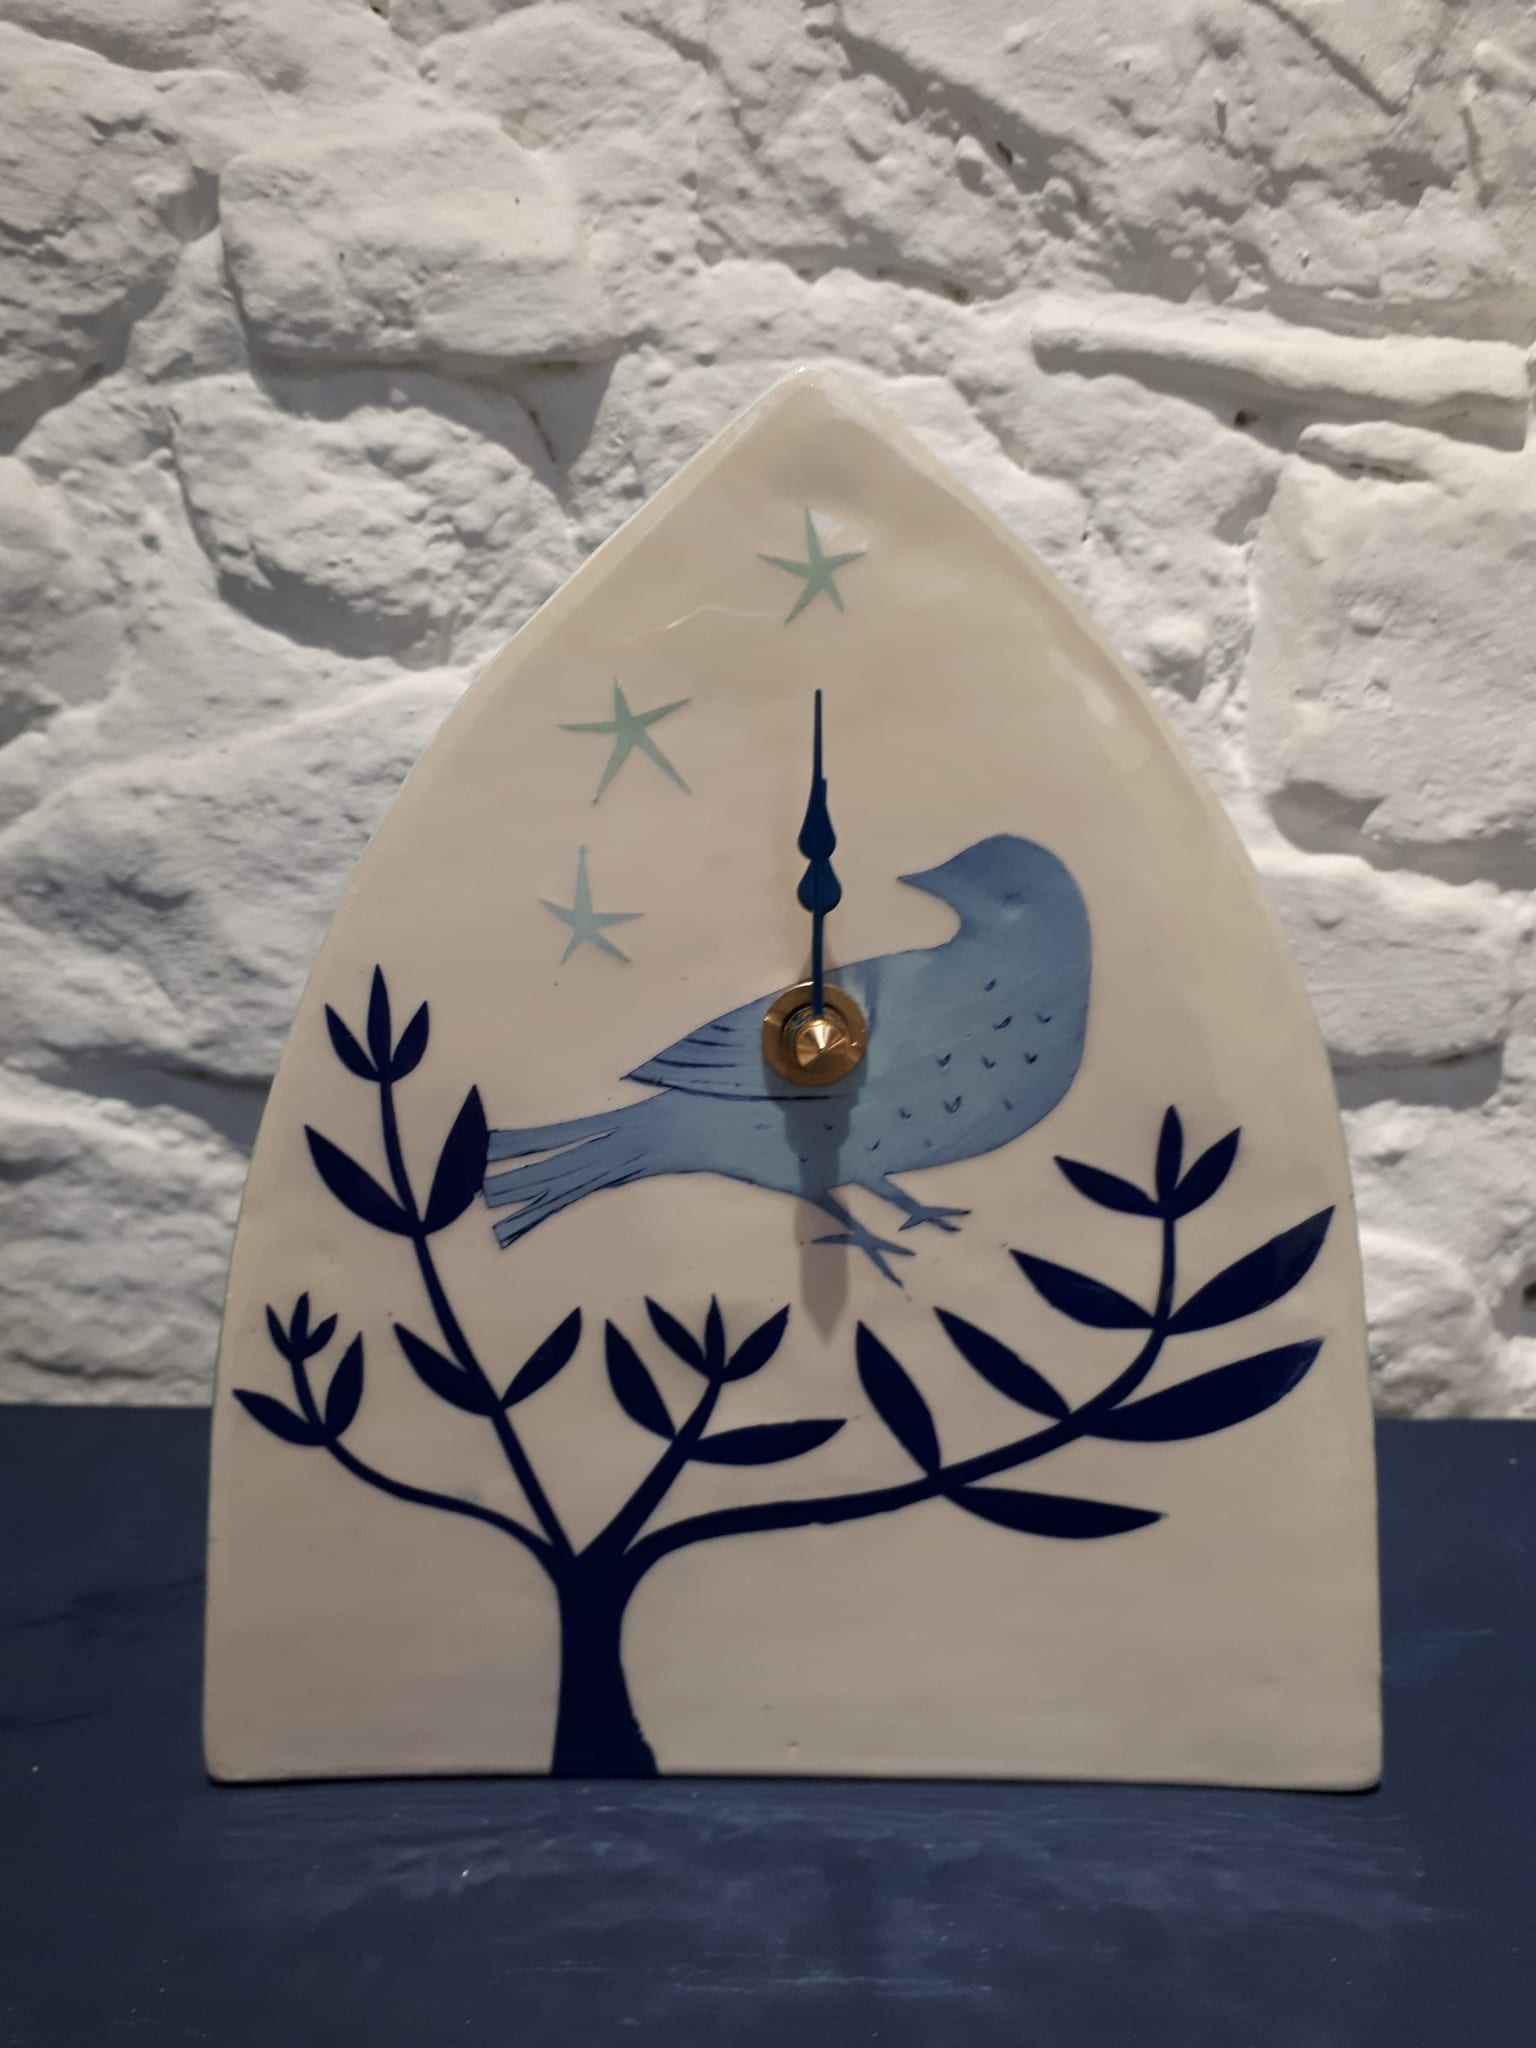 Welcombe pottery Bluebird in hedge clock 2018